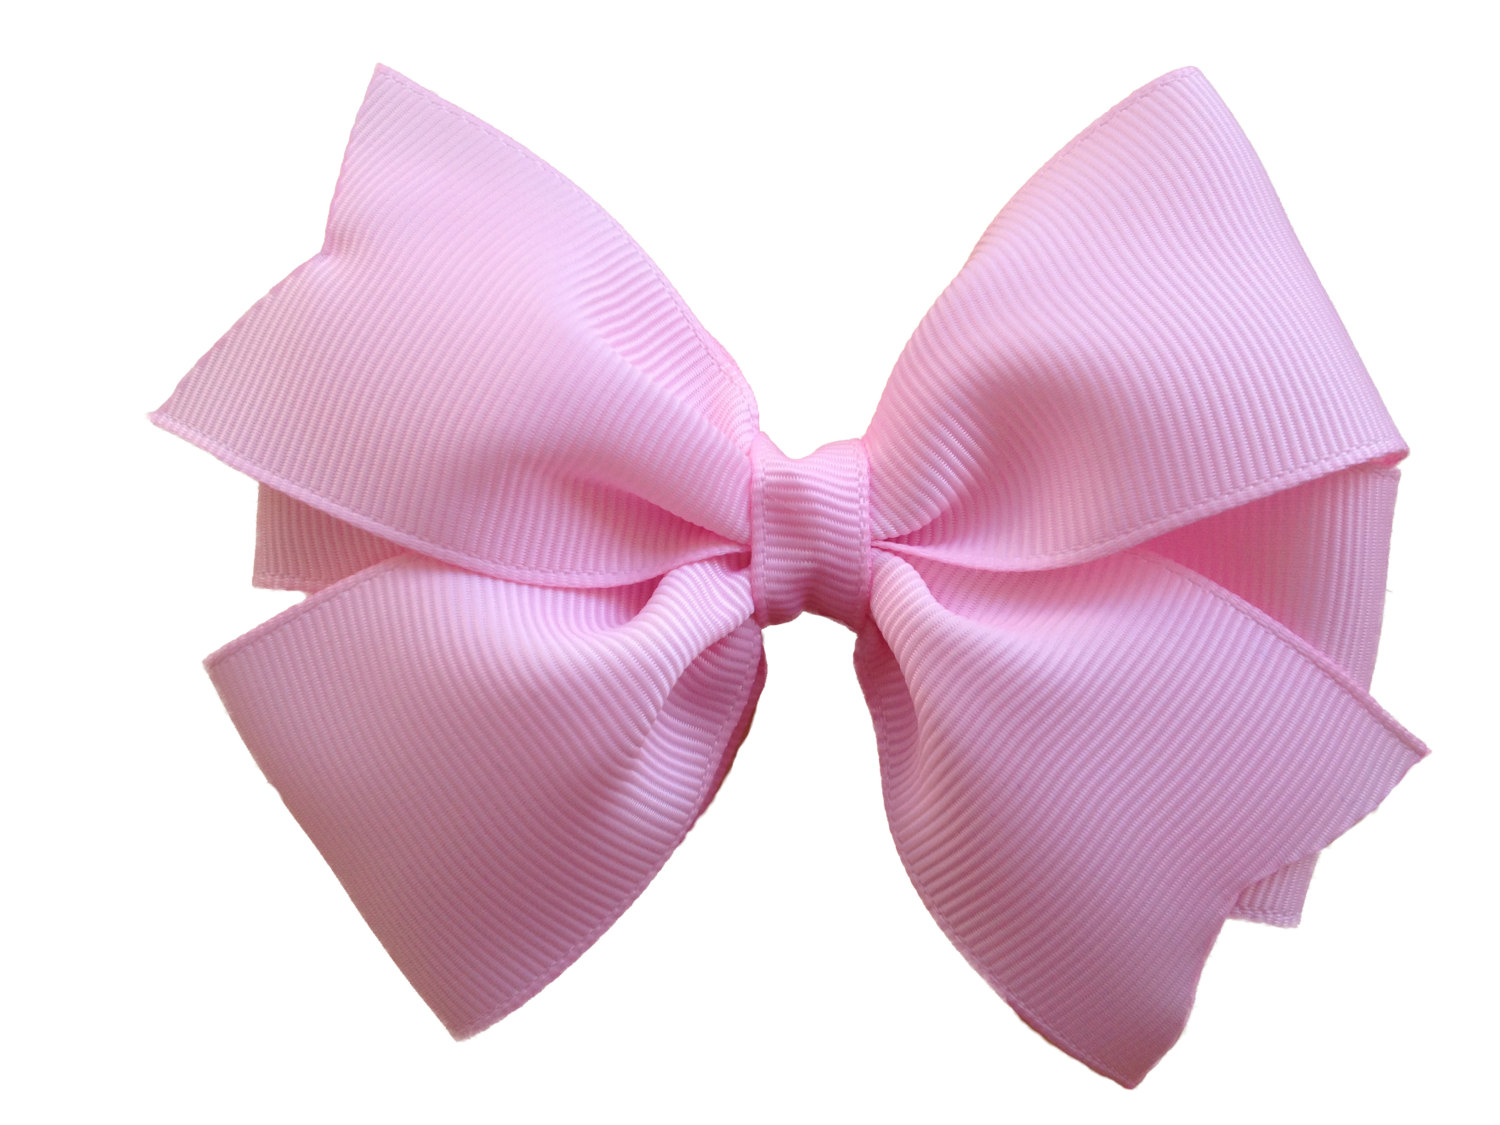 Pink Hair clipart pink bow Light item? Like pink bow